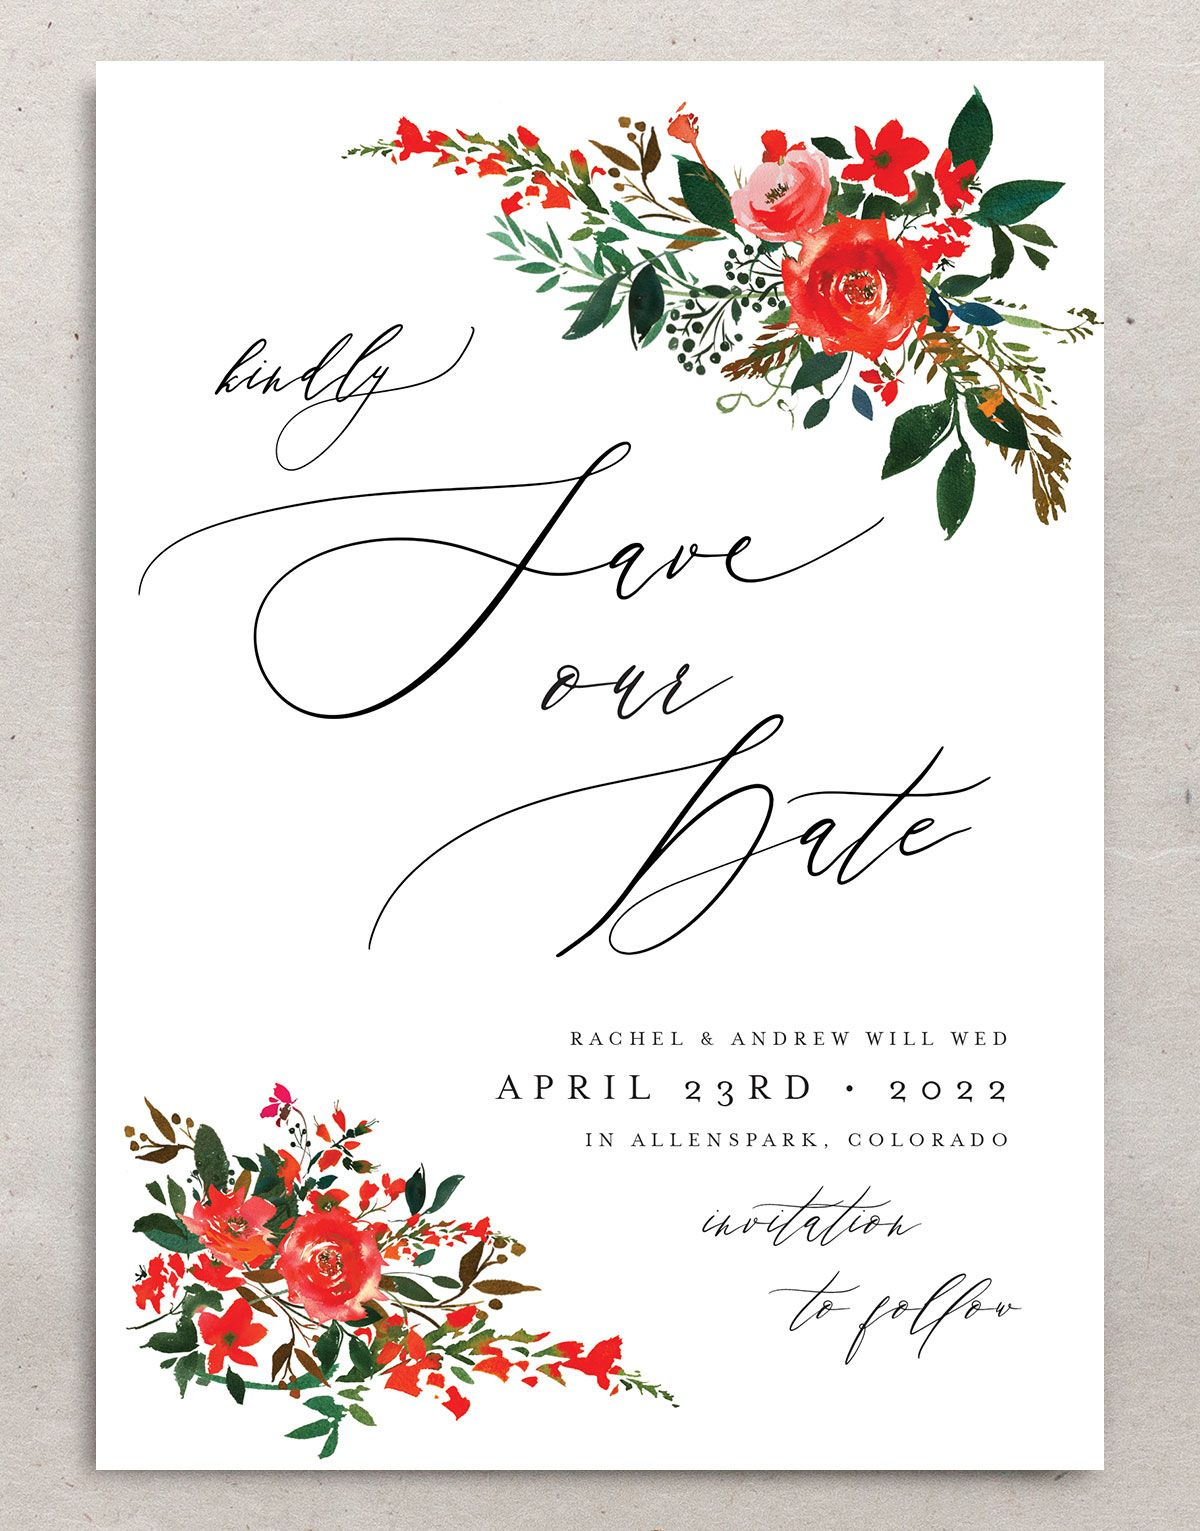 Cascading Altar save the dates in bright red